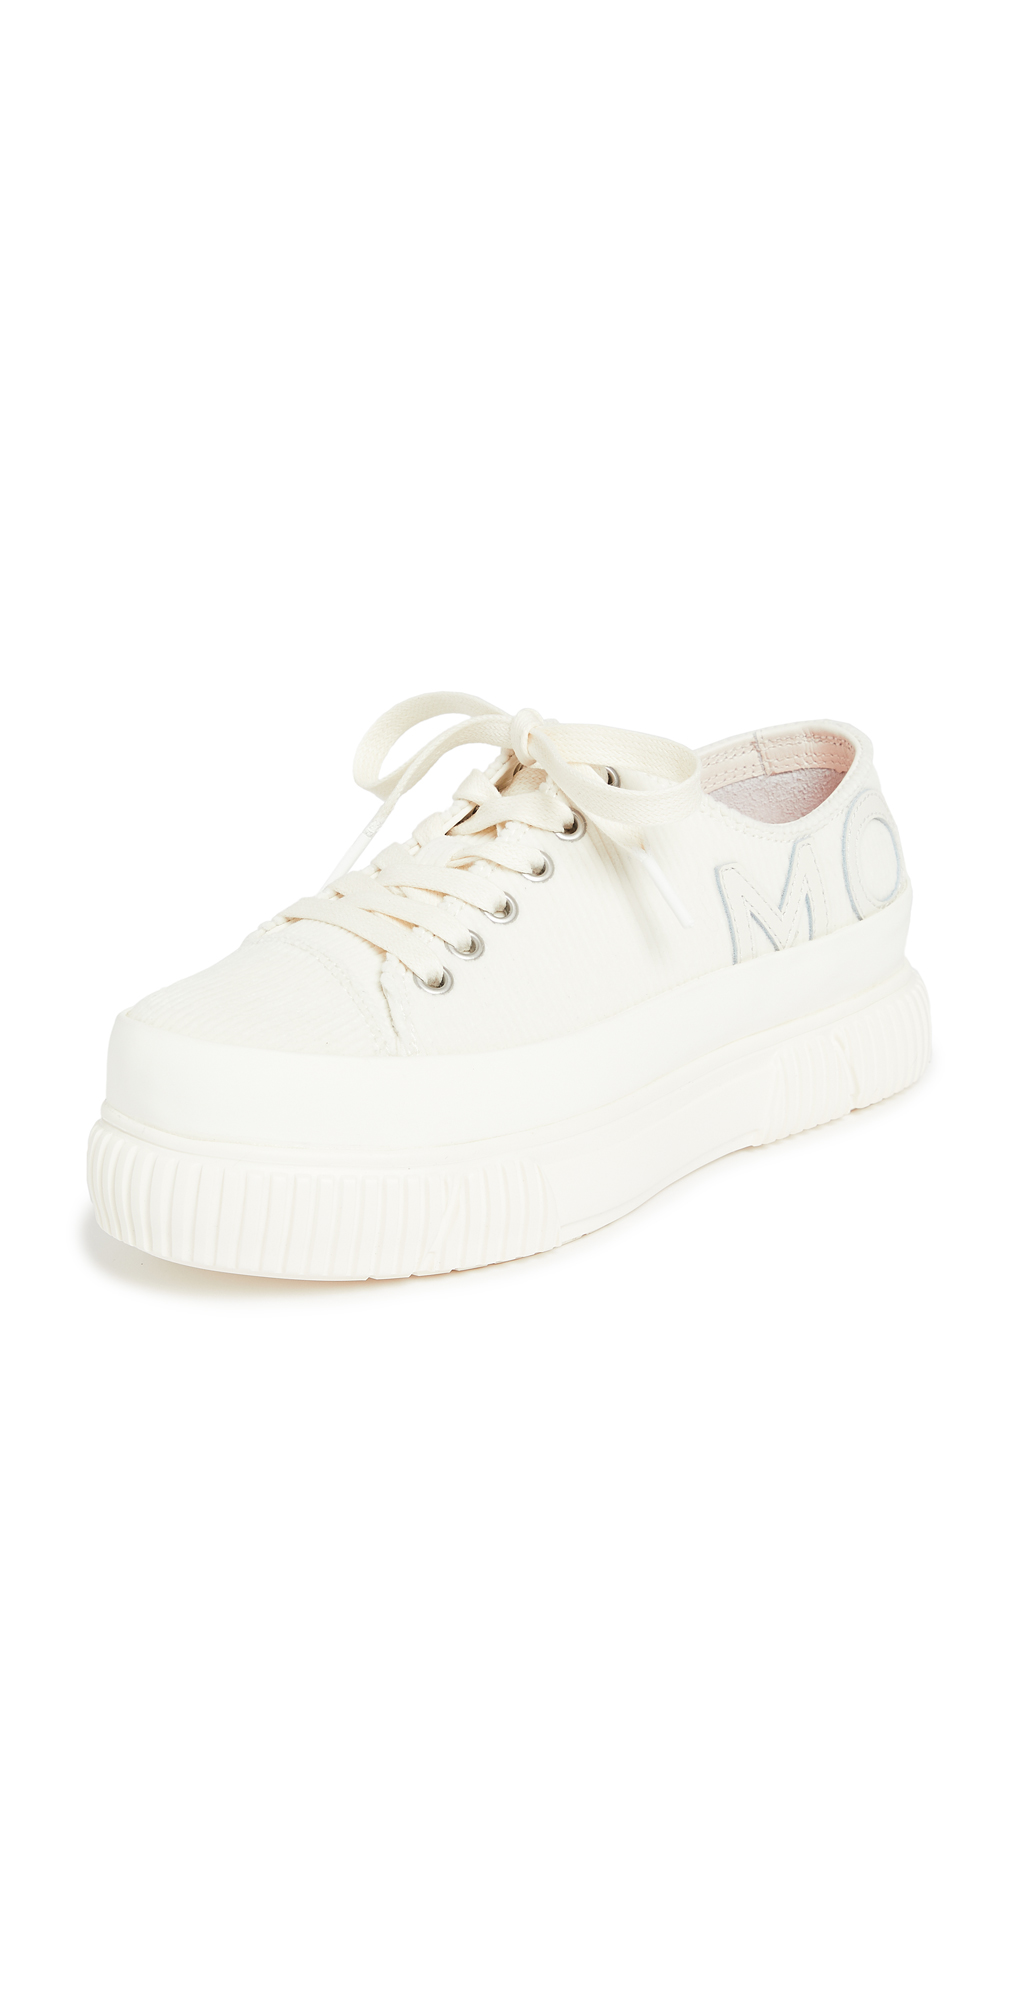 Monse x Both Classic Platform Sneakers